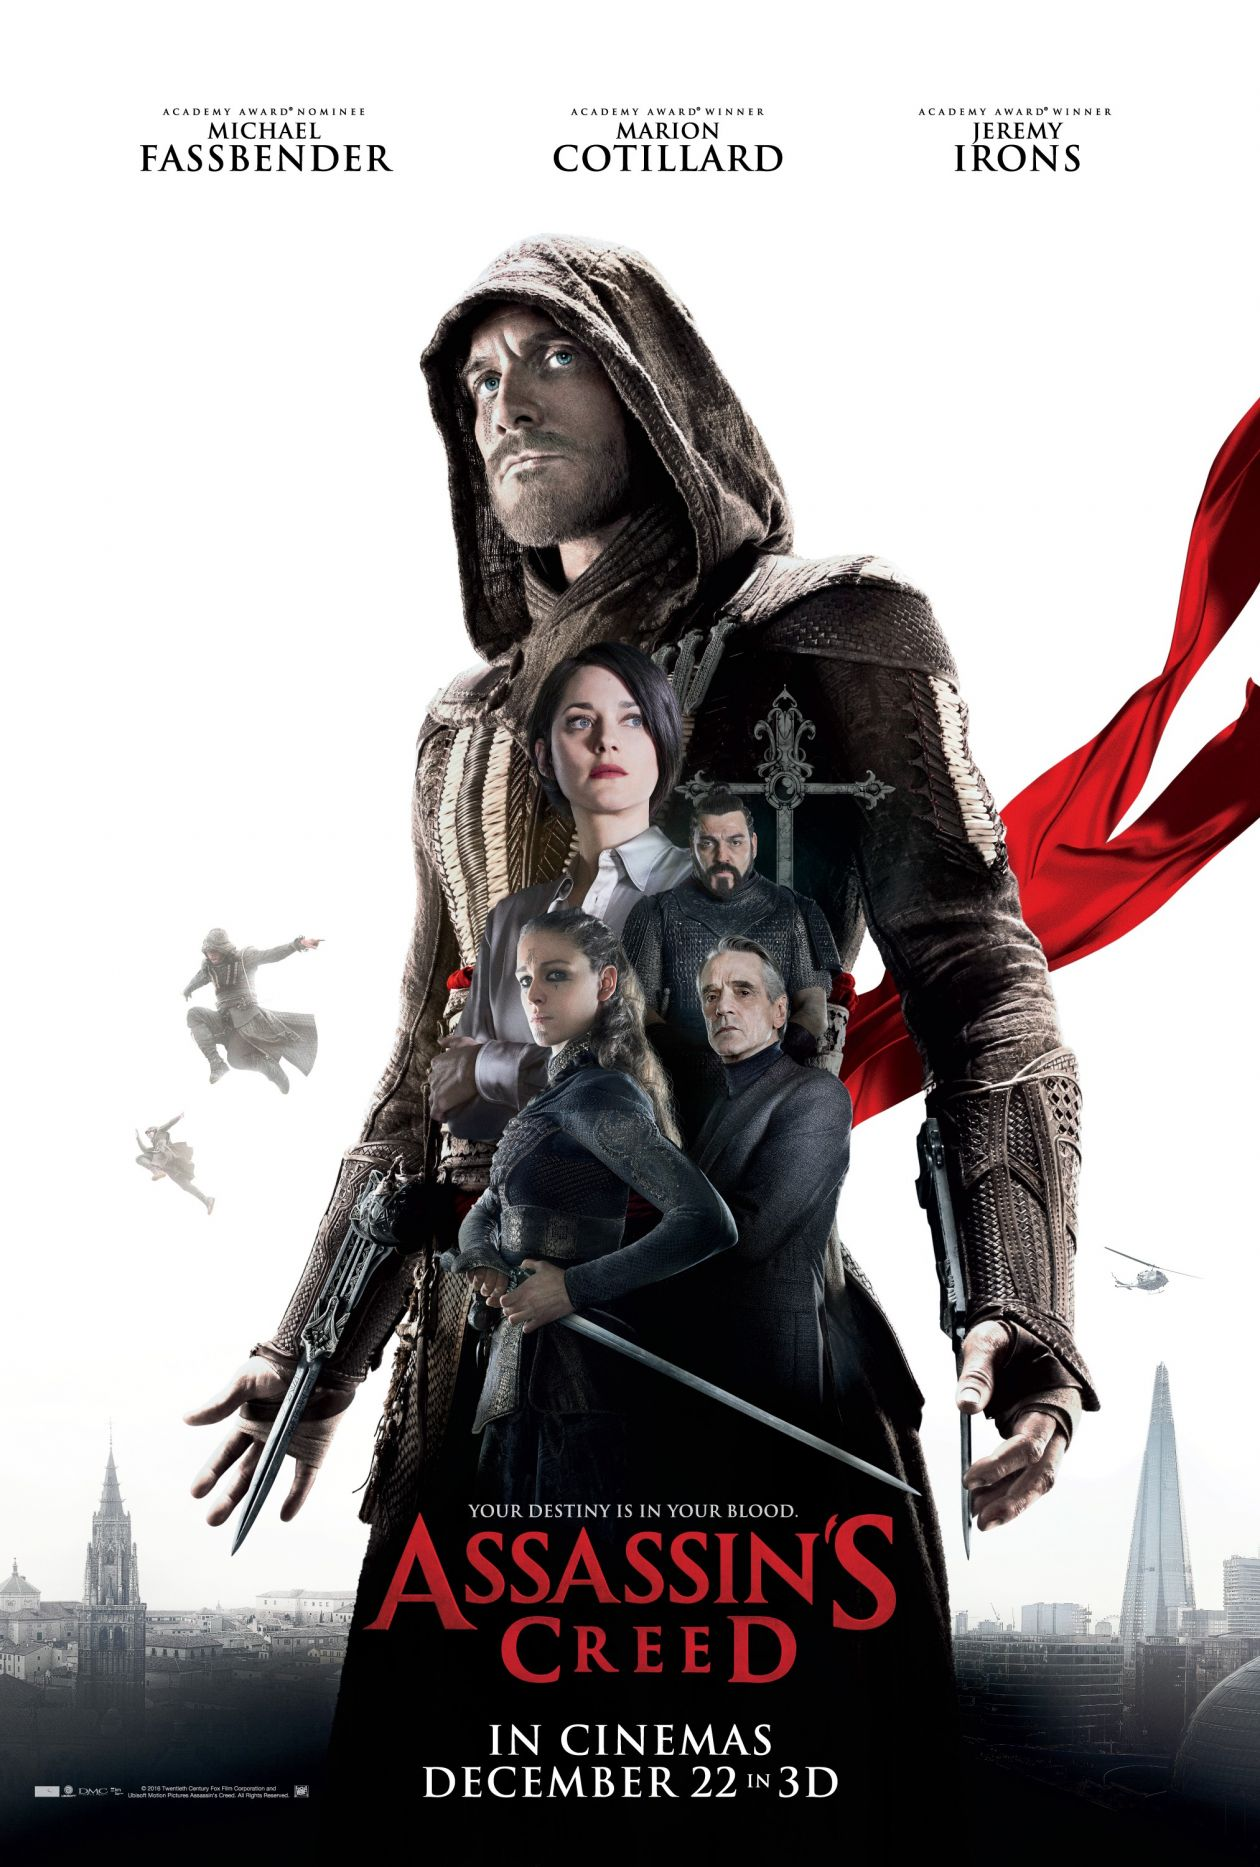 ARIANE LABED / MARION COTILLARD actresses actrices comédiennes / 2016 : Assassin's Creed / Justin Kurzel / MOVIE POSTER / TEASER / AFFICHE FILM